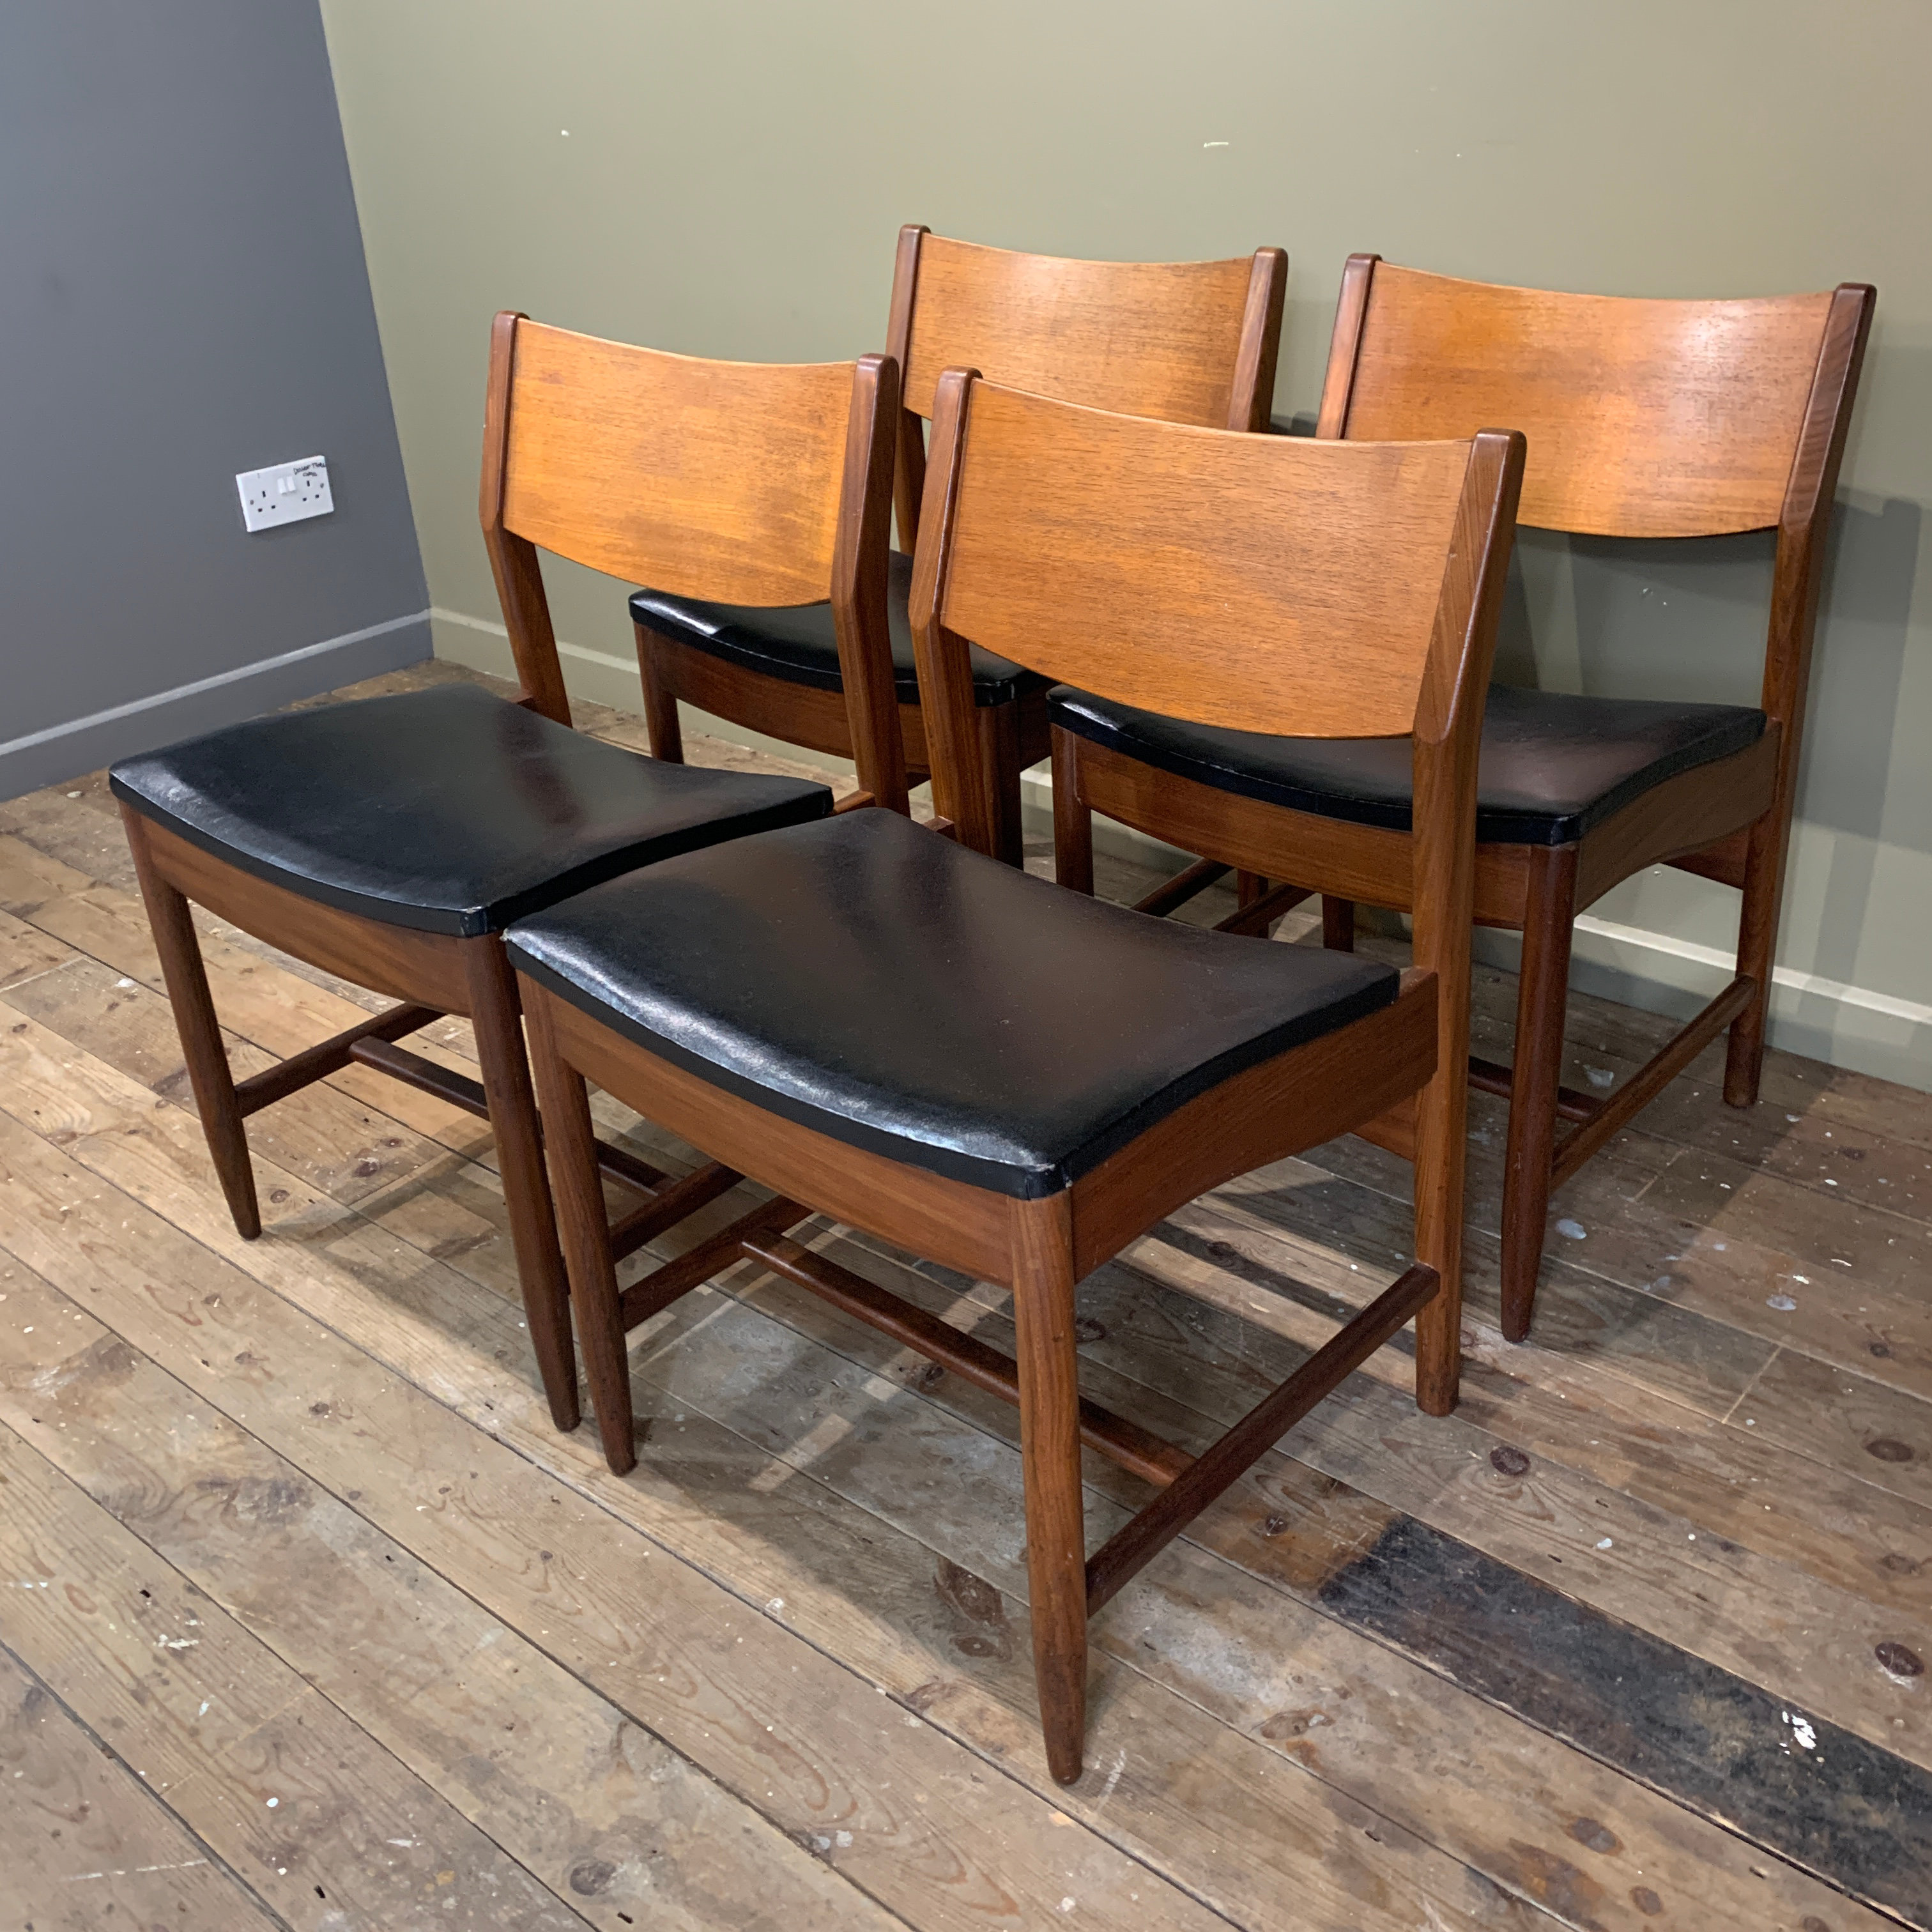 Magnificent Set Of 4 Teak Midcentury Dining Chairs Gmtry Best Dining Table And Chair Ideas Images Gmtryco